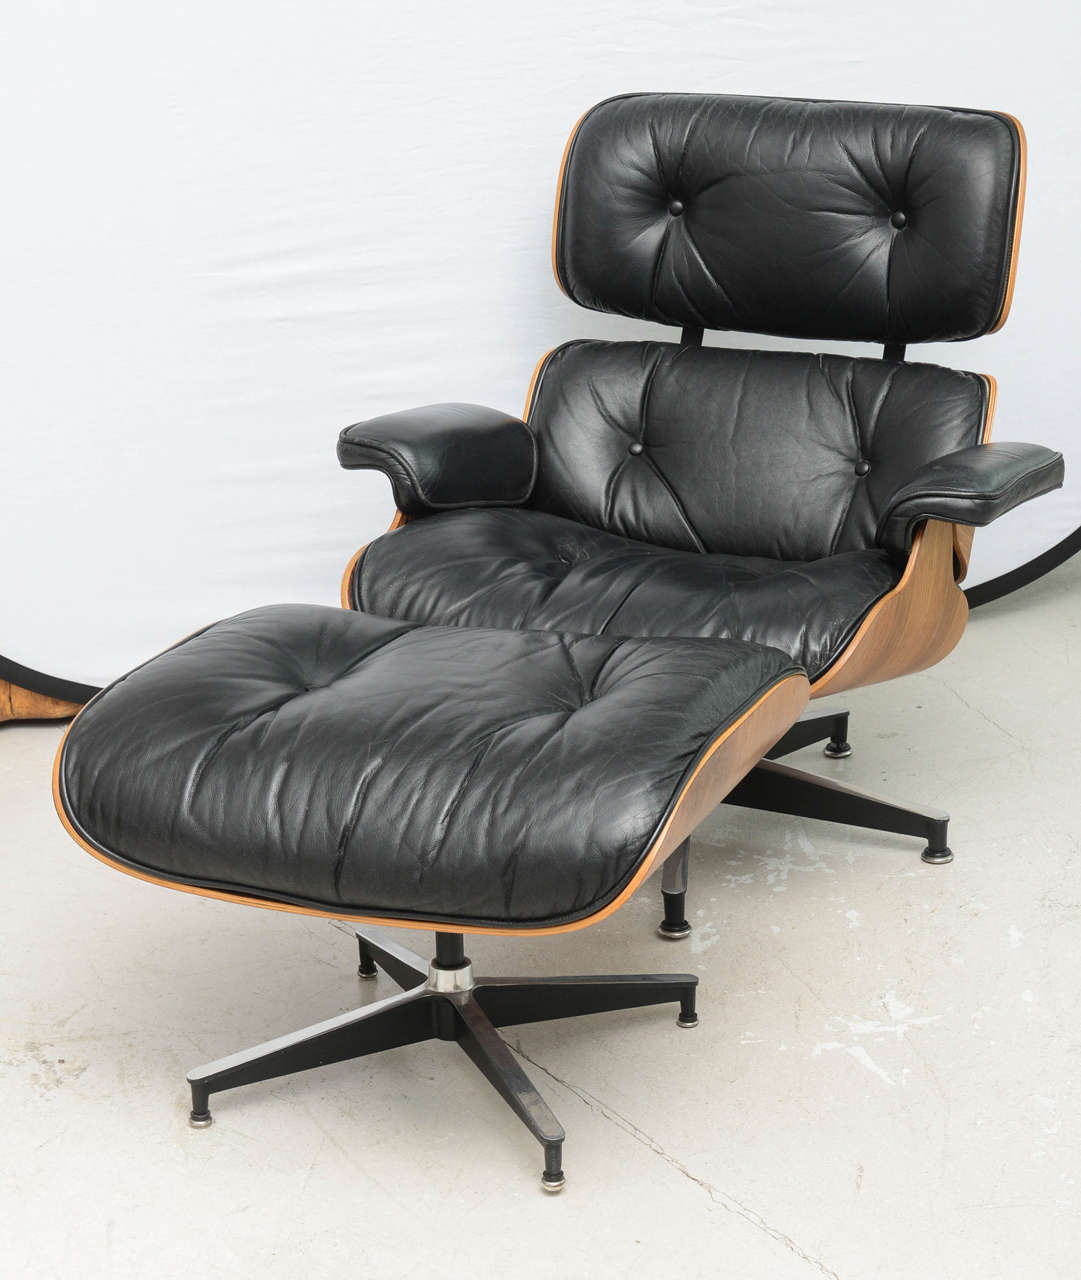 eames style lounge chair and ottoman rosewood black leather types of covers for wedding two vintage chairs